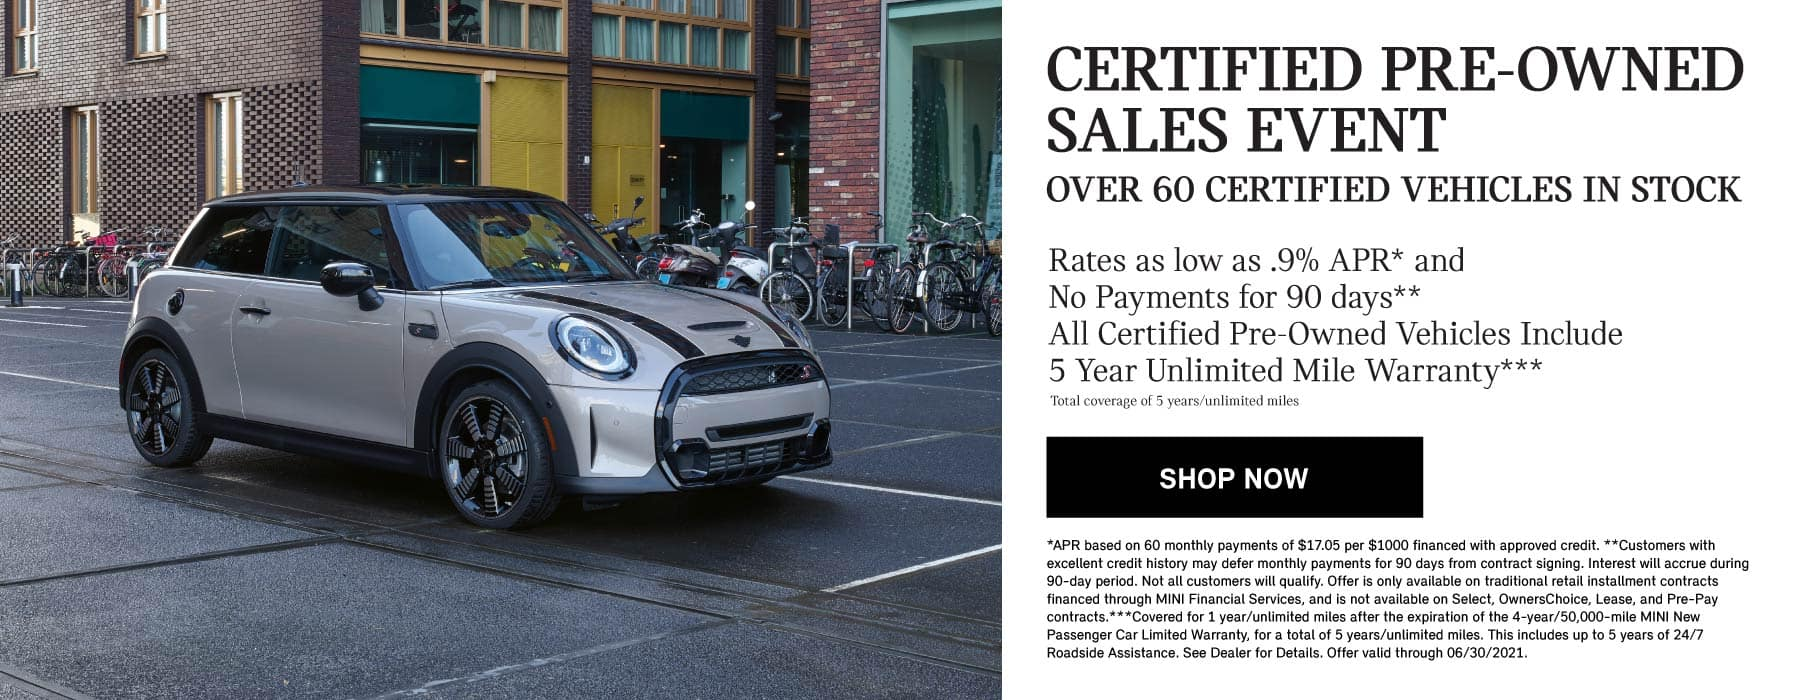 Certified Pre-Owned Sales Event   Shop Now